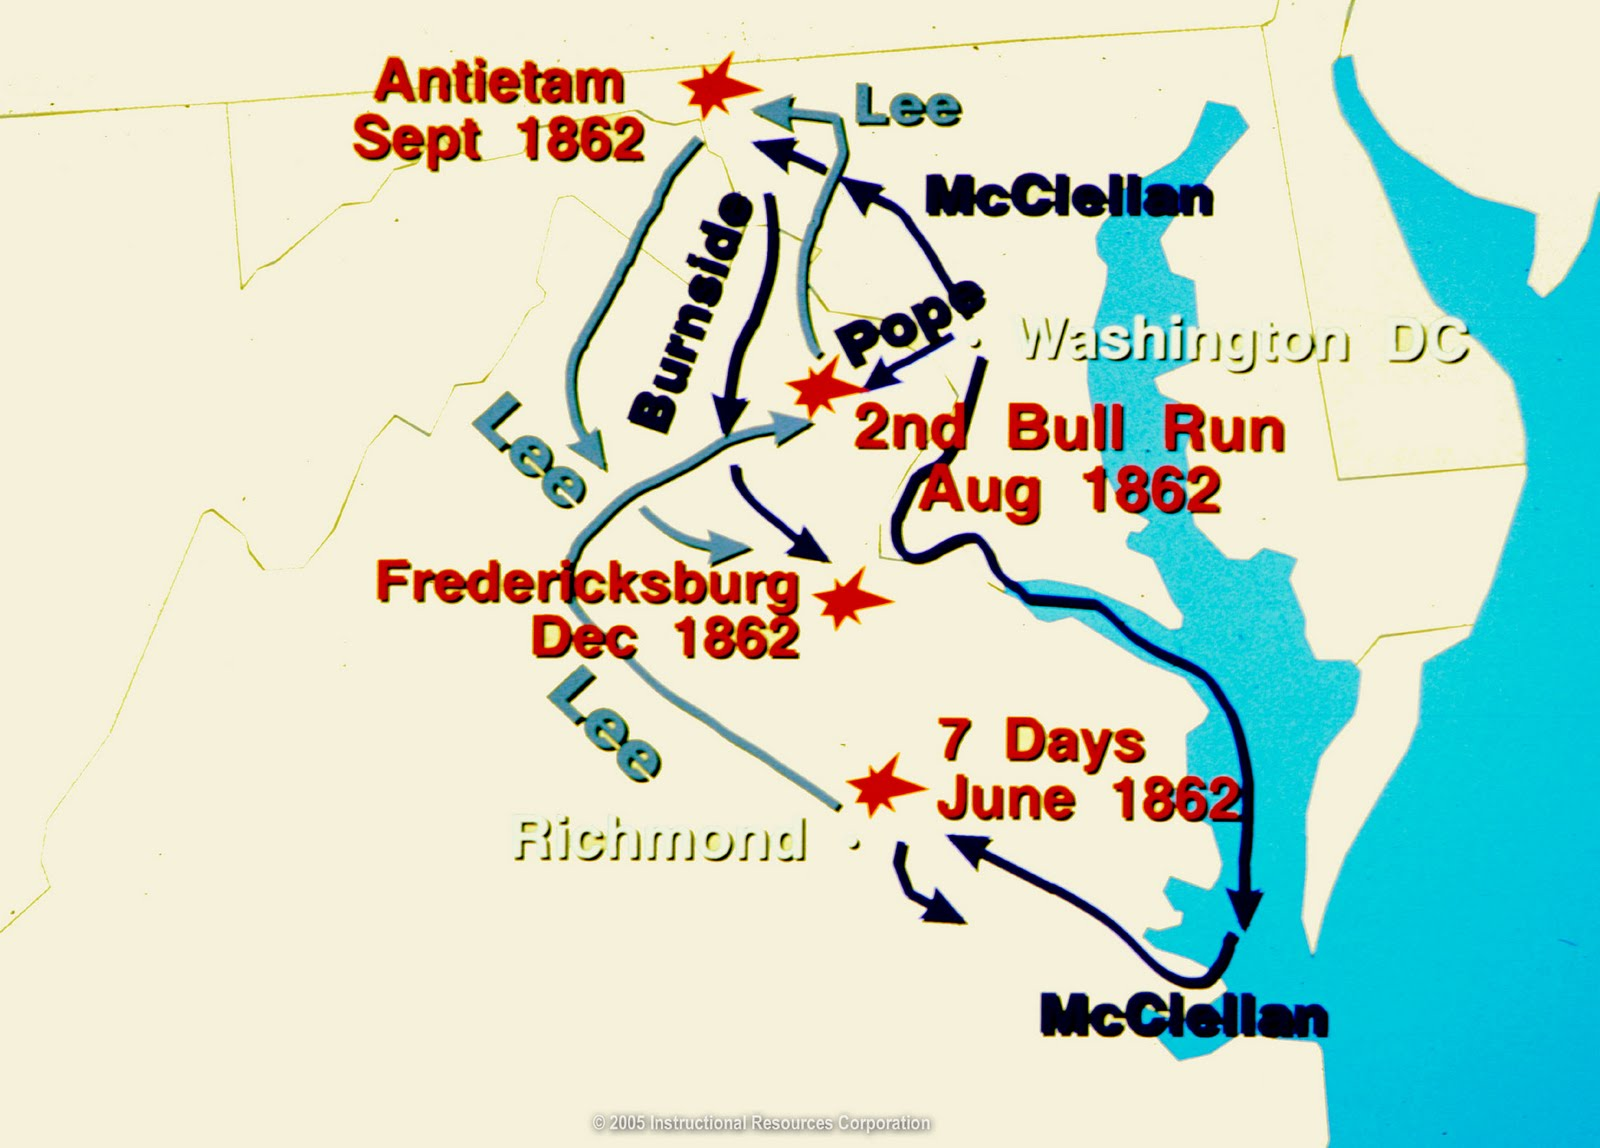 the battle of antietam is to this day the bloodiest single day in american history this extremely important conflict occurred on september 17 1862